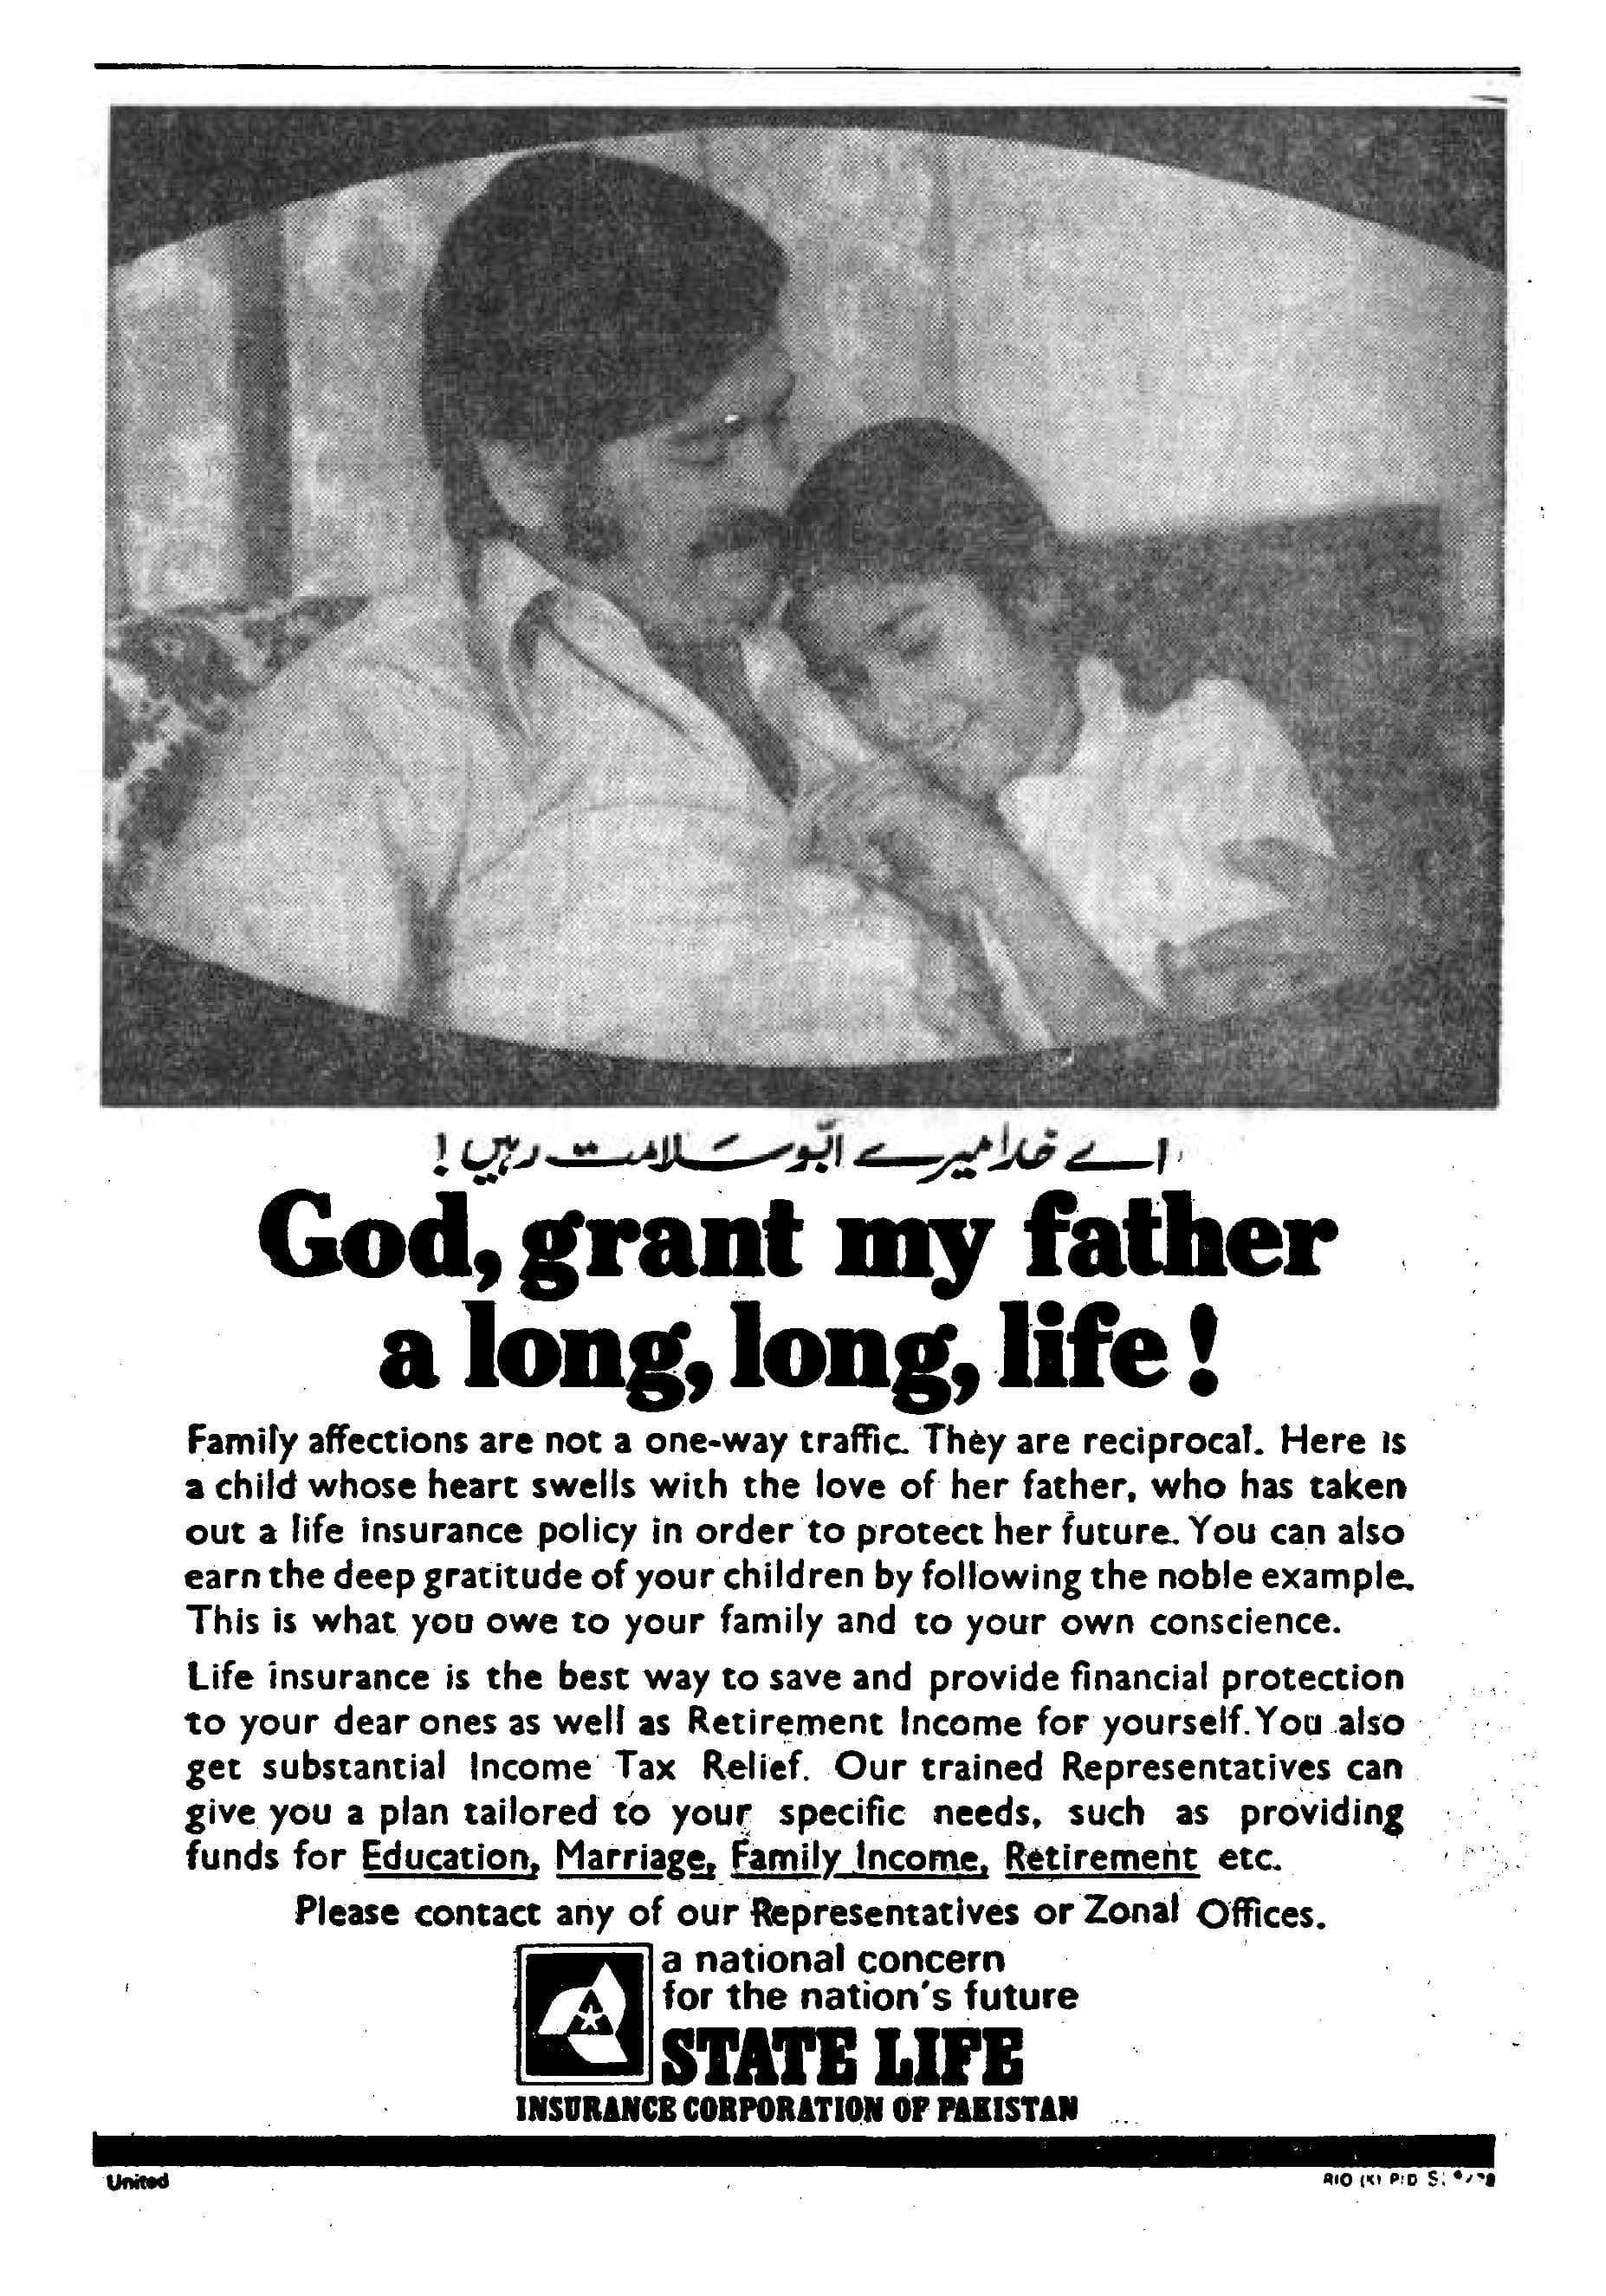 State Life ad in 1978